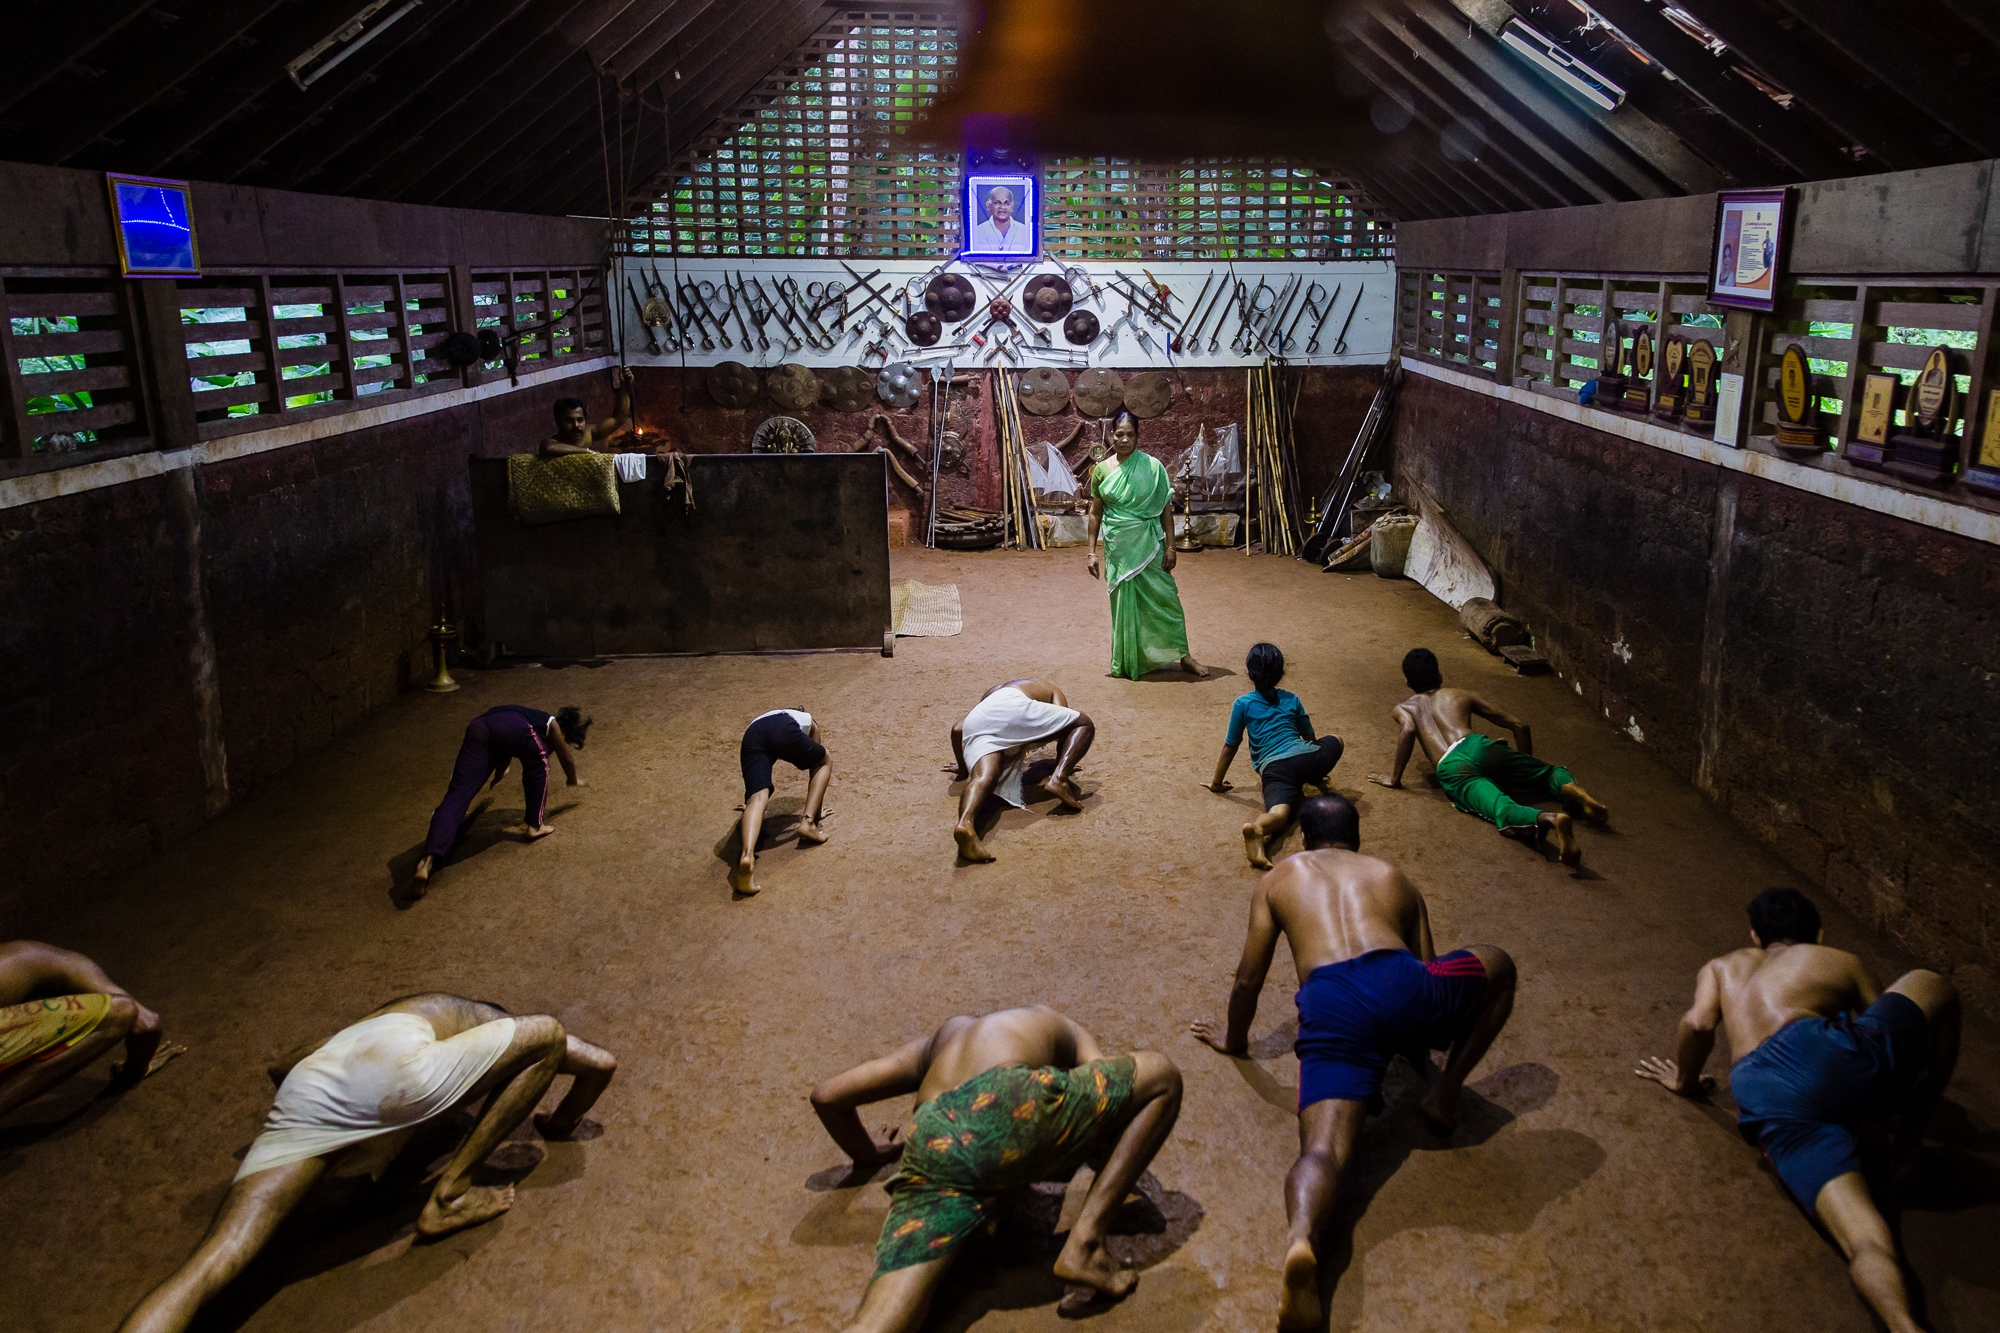 Vatakara, Kerala, INDIA - September 18, 2017: Meenakshi Gurukkhal, 76, watches on as students practice Kalaripayattu techniques. Commonly all 'Kalaripayattu' grand masters are male. Meenakshi is an exception, being a female grand master that men respect and look up to.